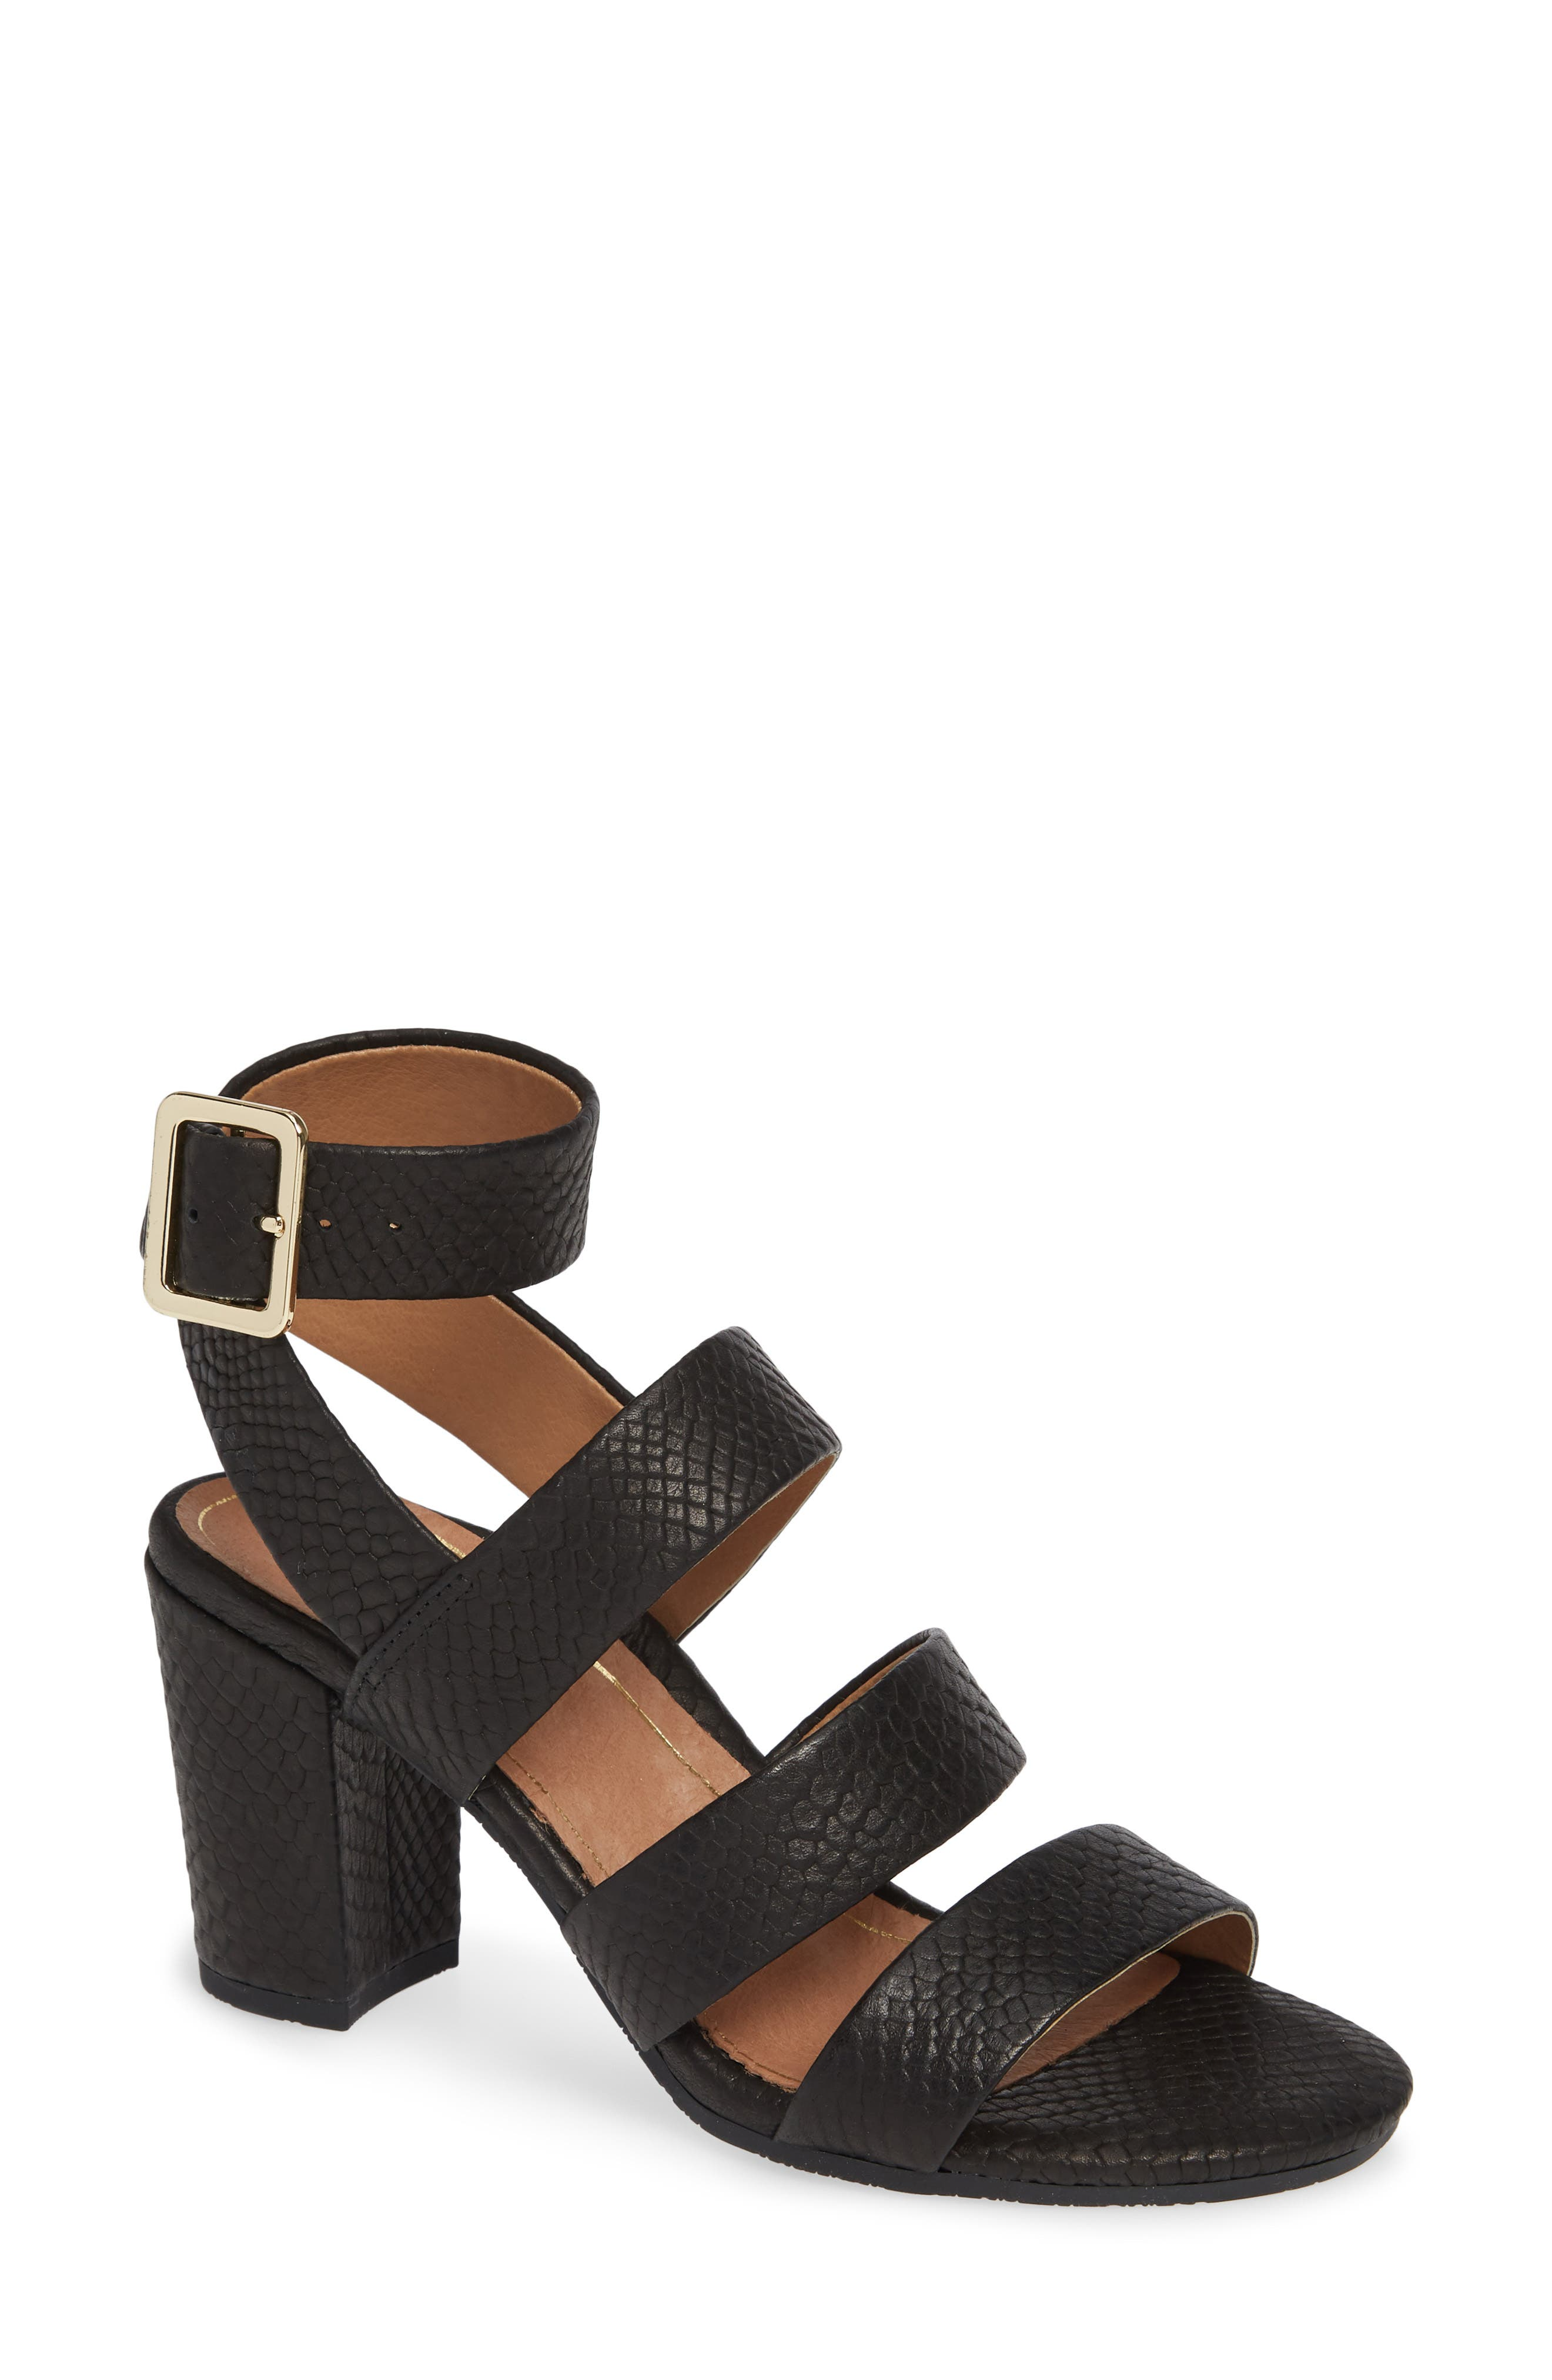 Blaire Block Heel Sandal,                         Main,                         color, BLACK SNAKE EMBOSSED LEATHER